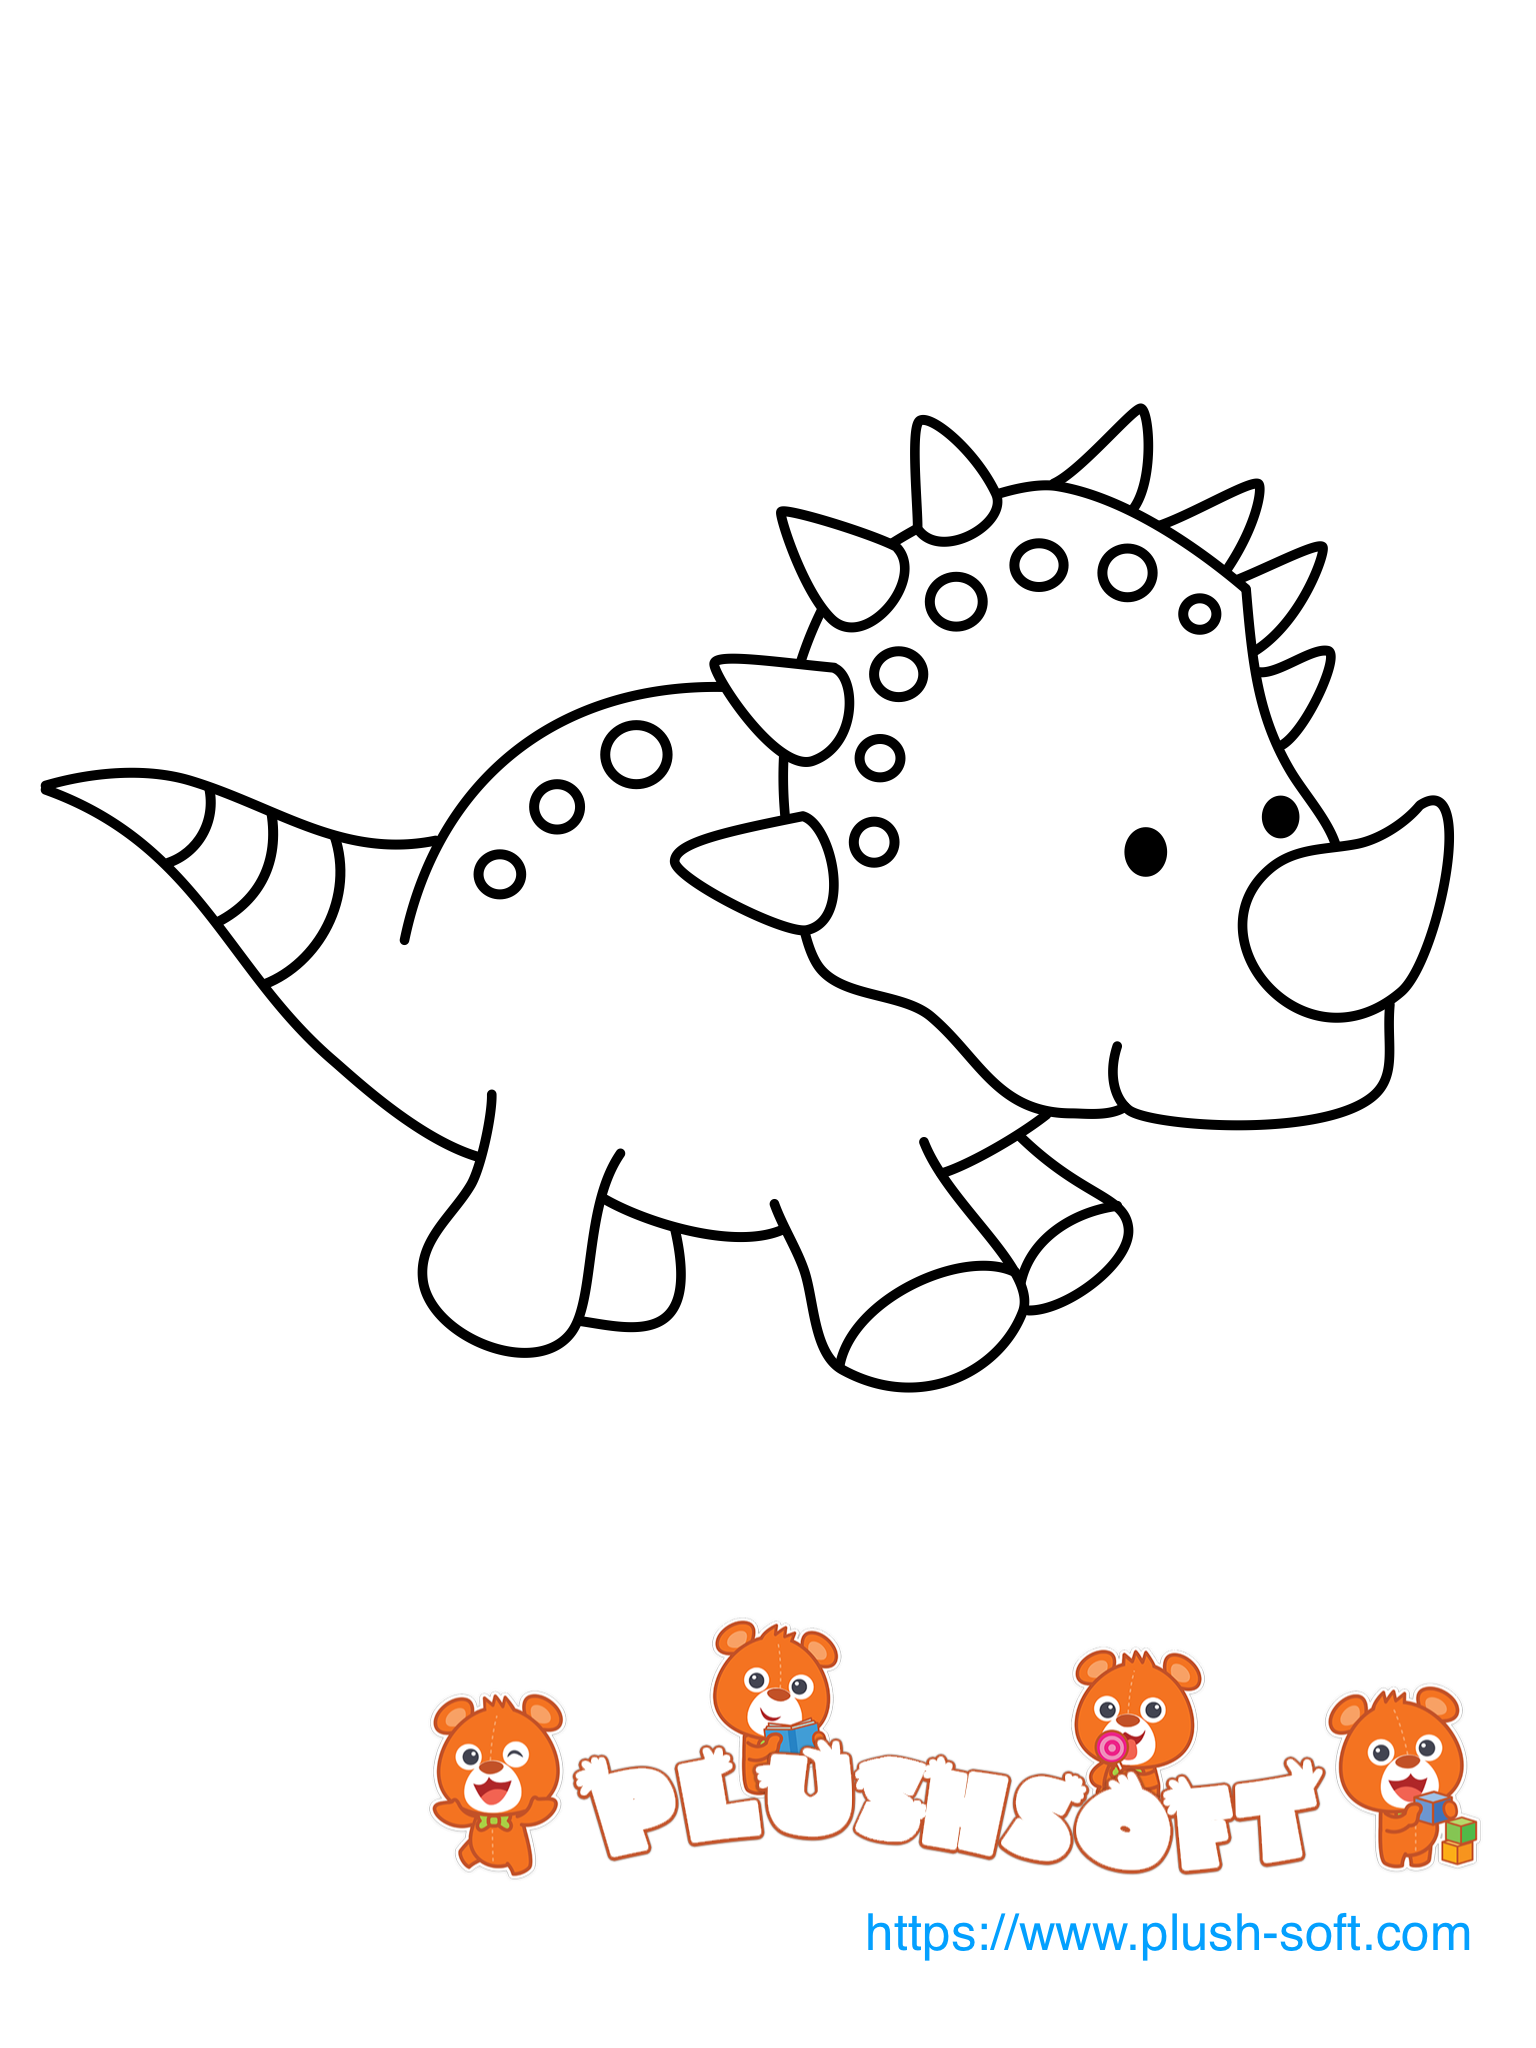 Pin By Plush Soft Ood On Printable Coloring Pages For Toddlers Dinosaur Coloring Pages